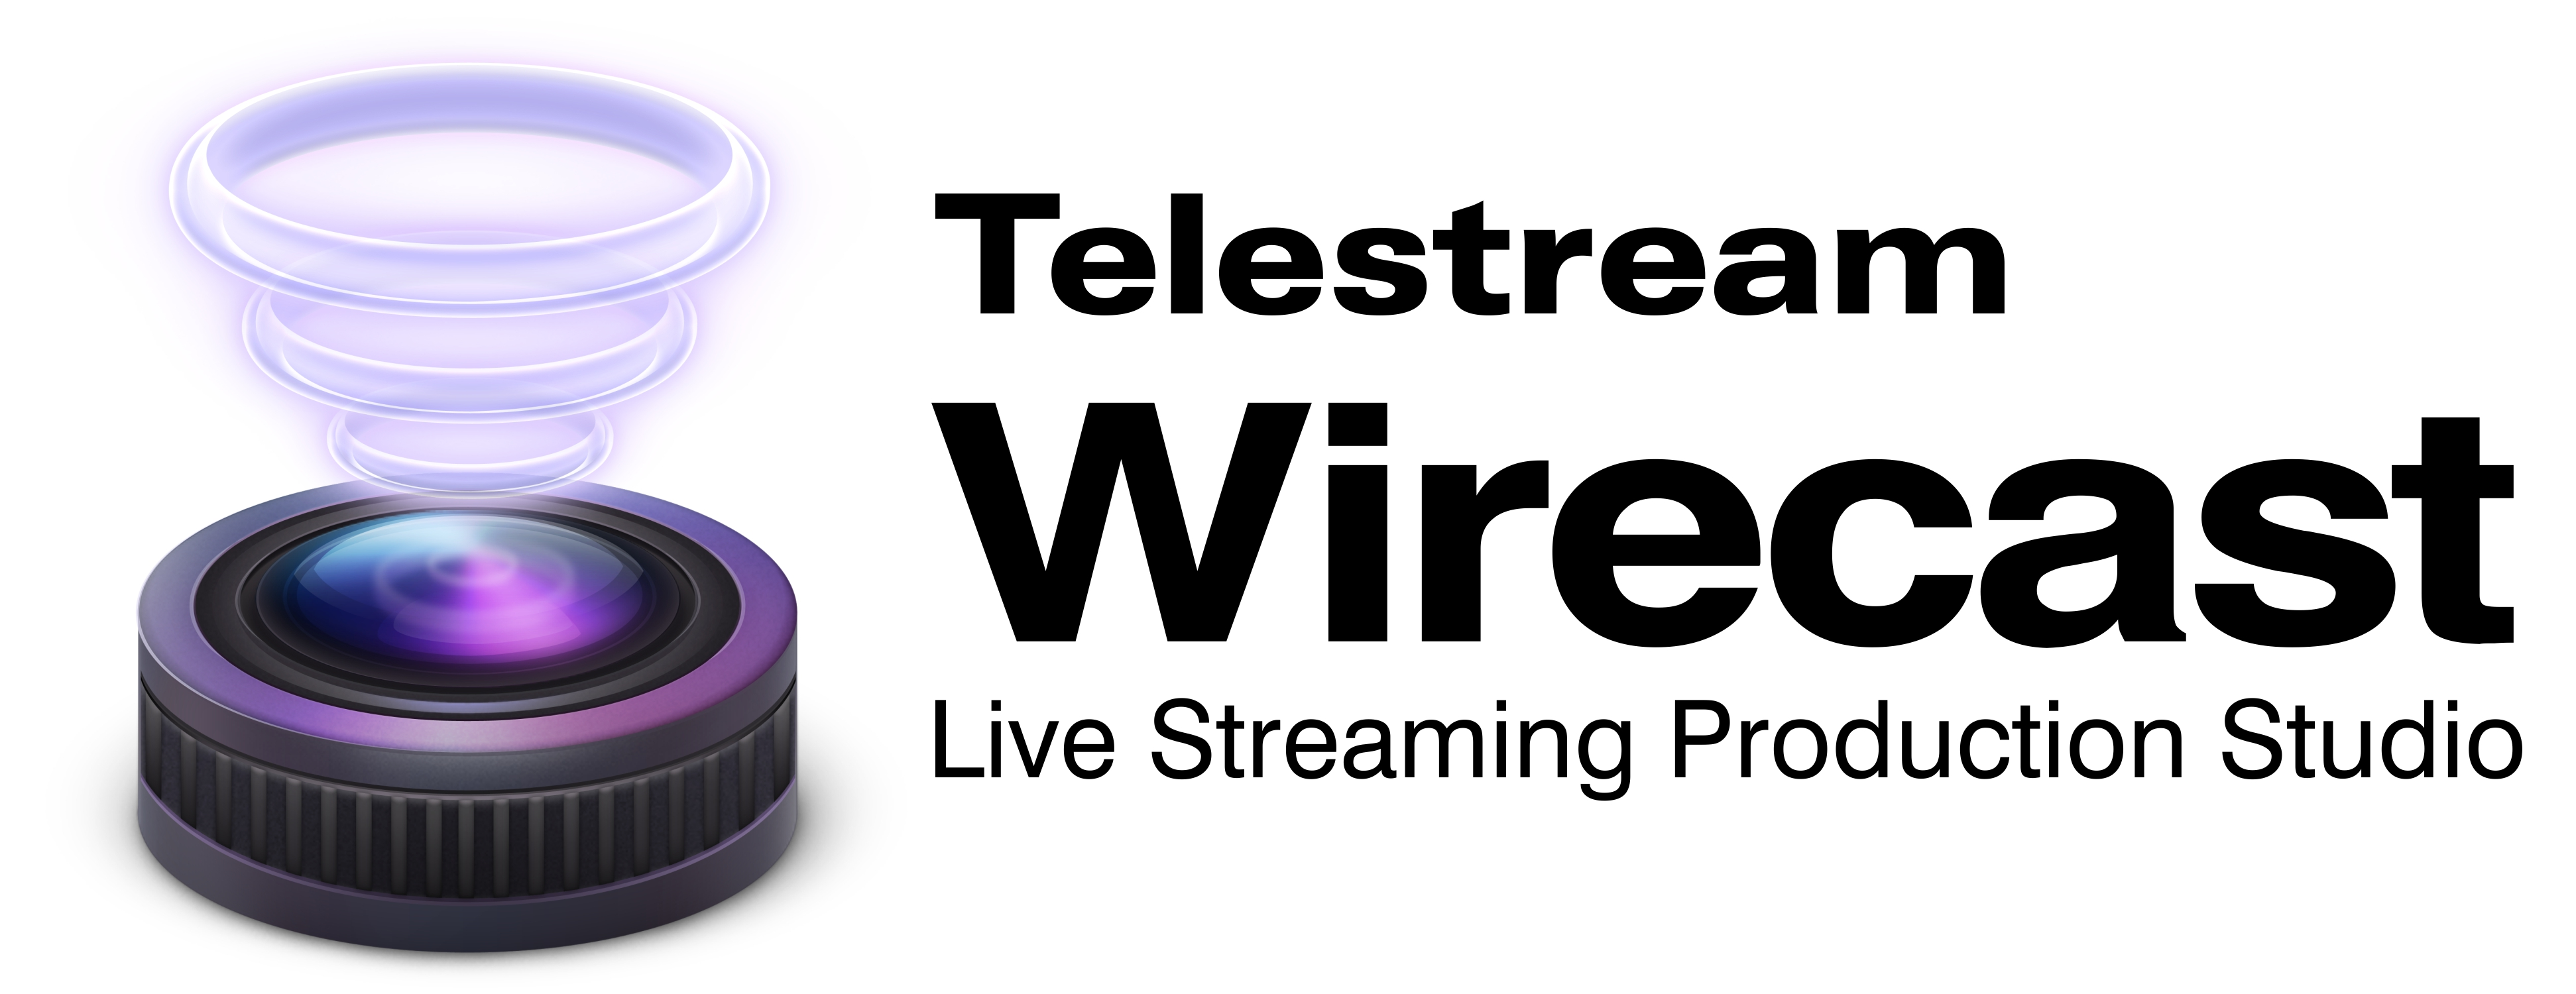 Telestream-Wirecast-logo1